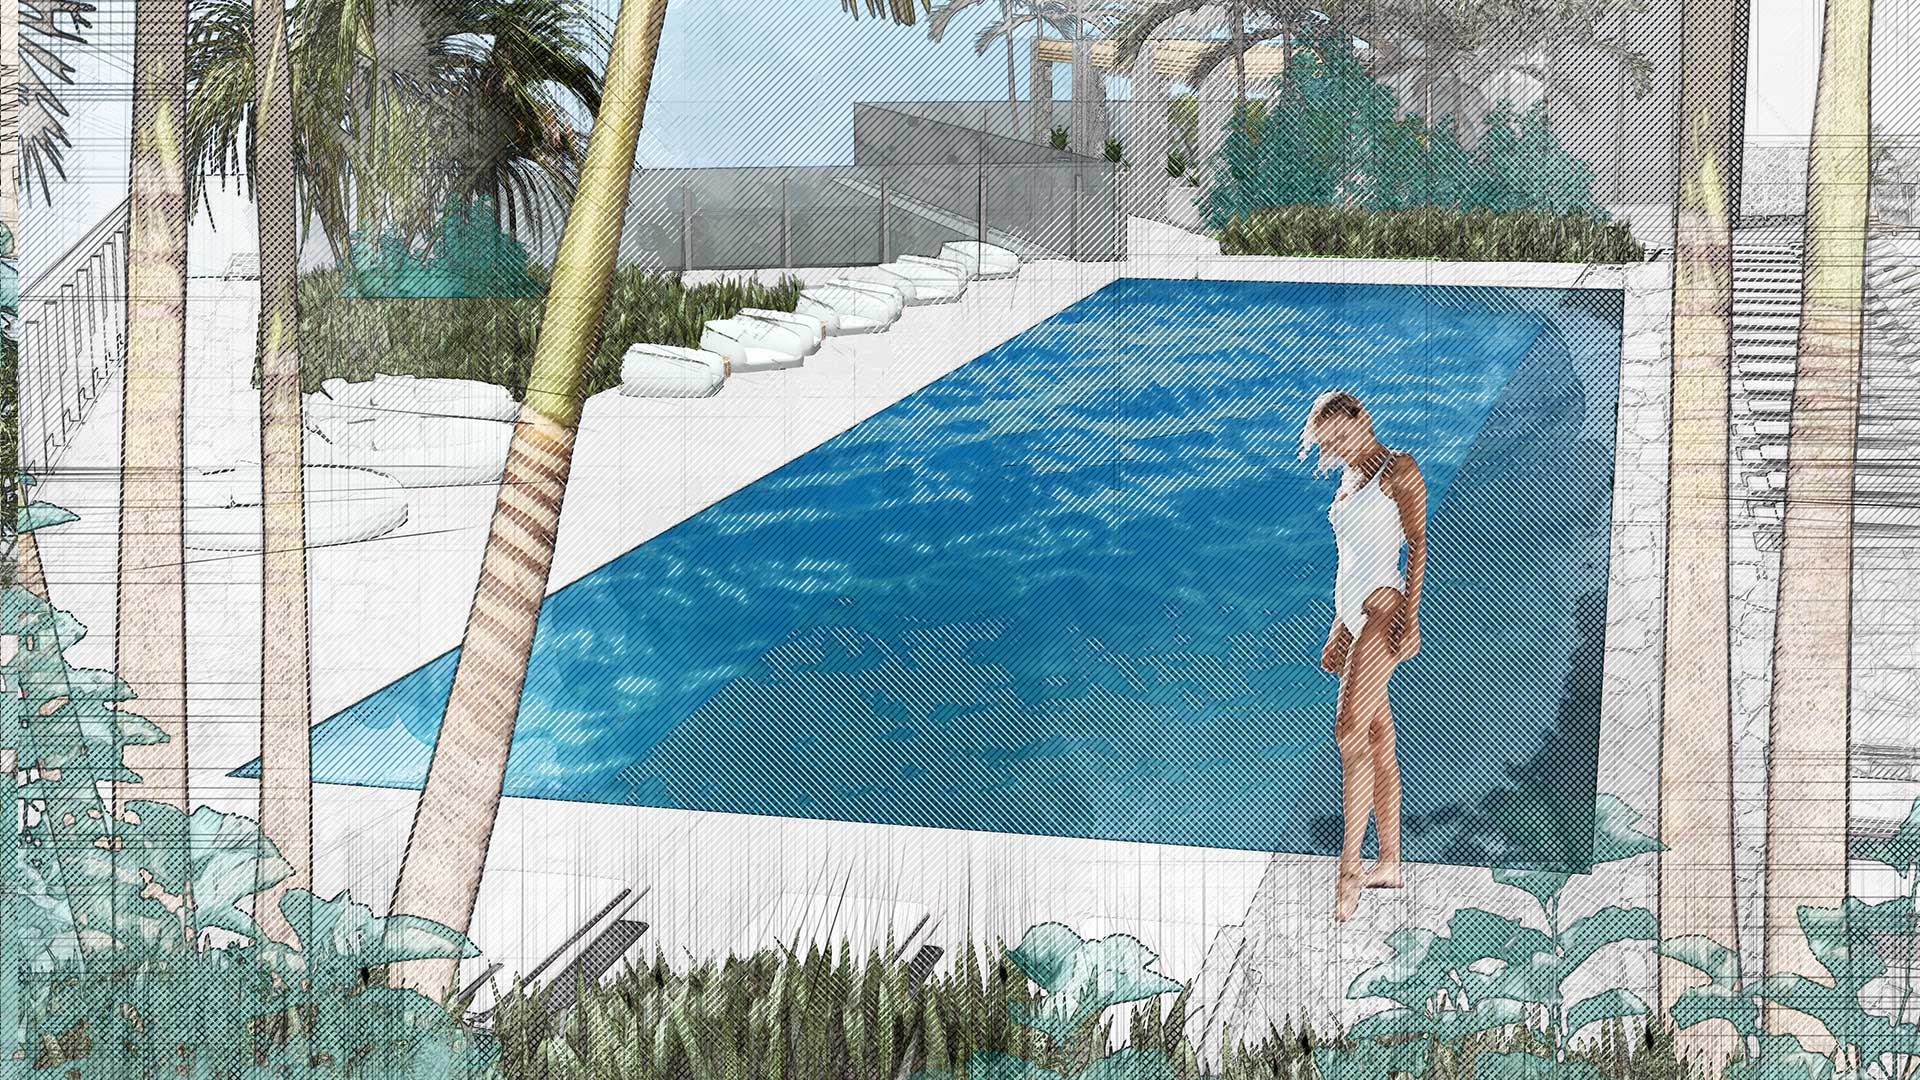 Sketching of landscape design of 7140 Collins Garden showing woman in front of pool with plants and trees surrounding